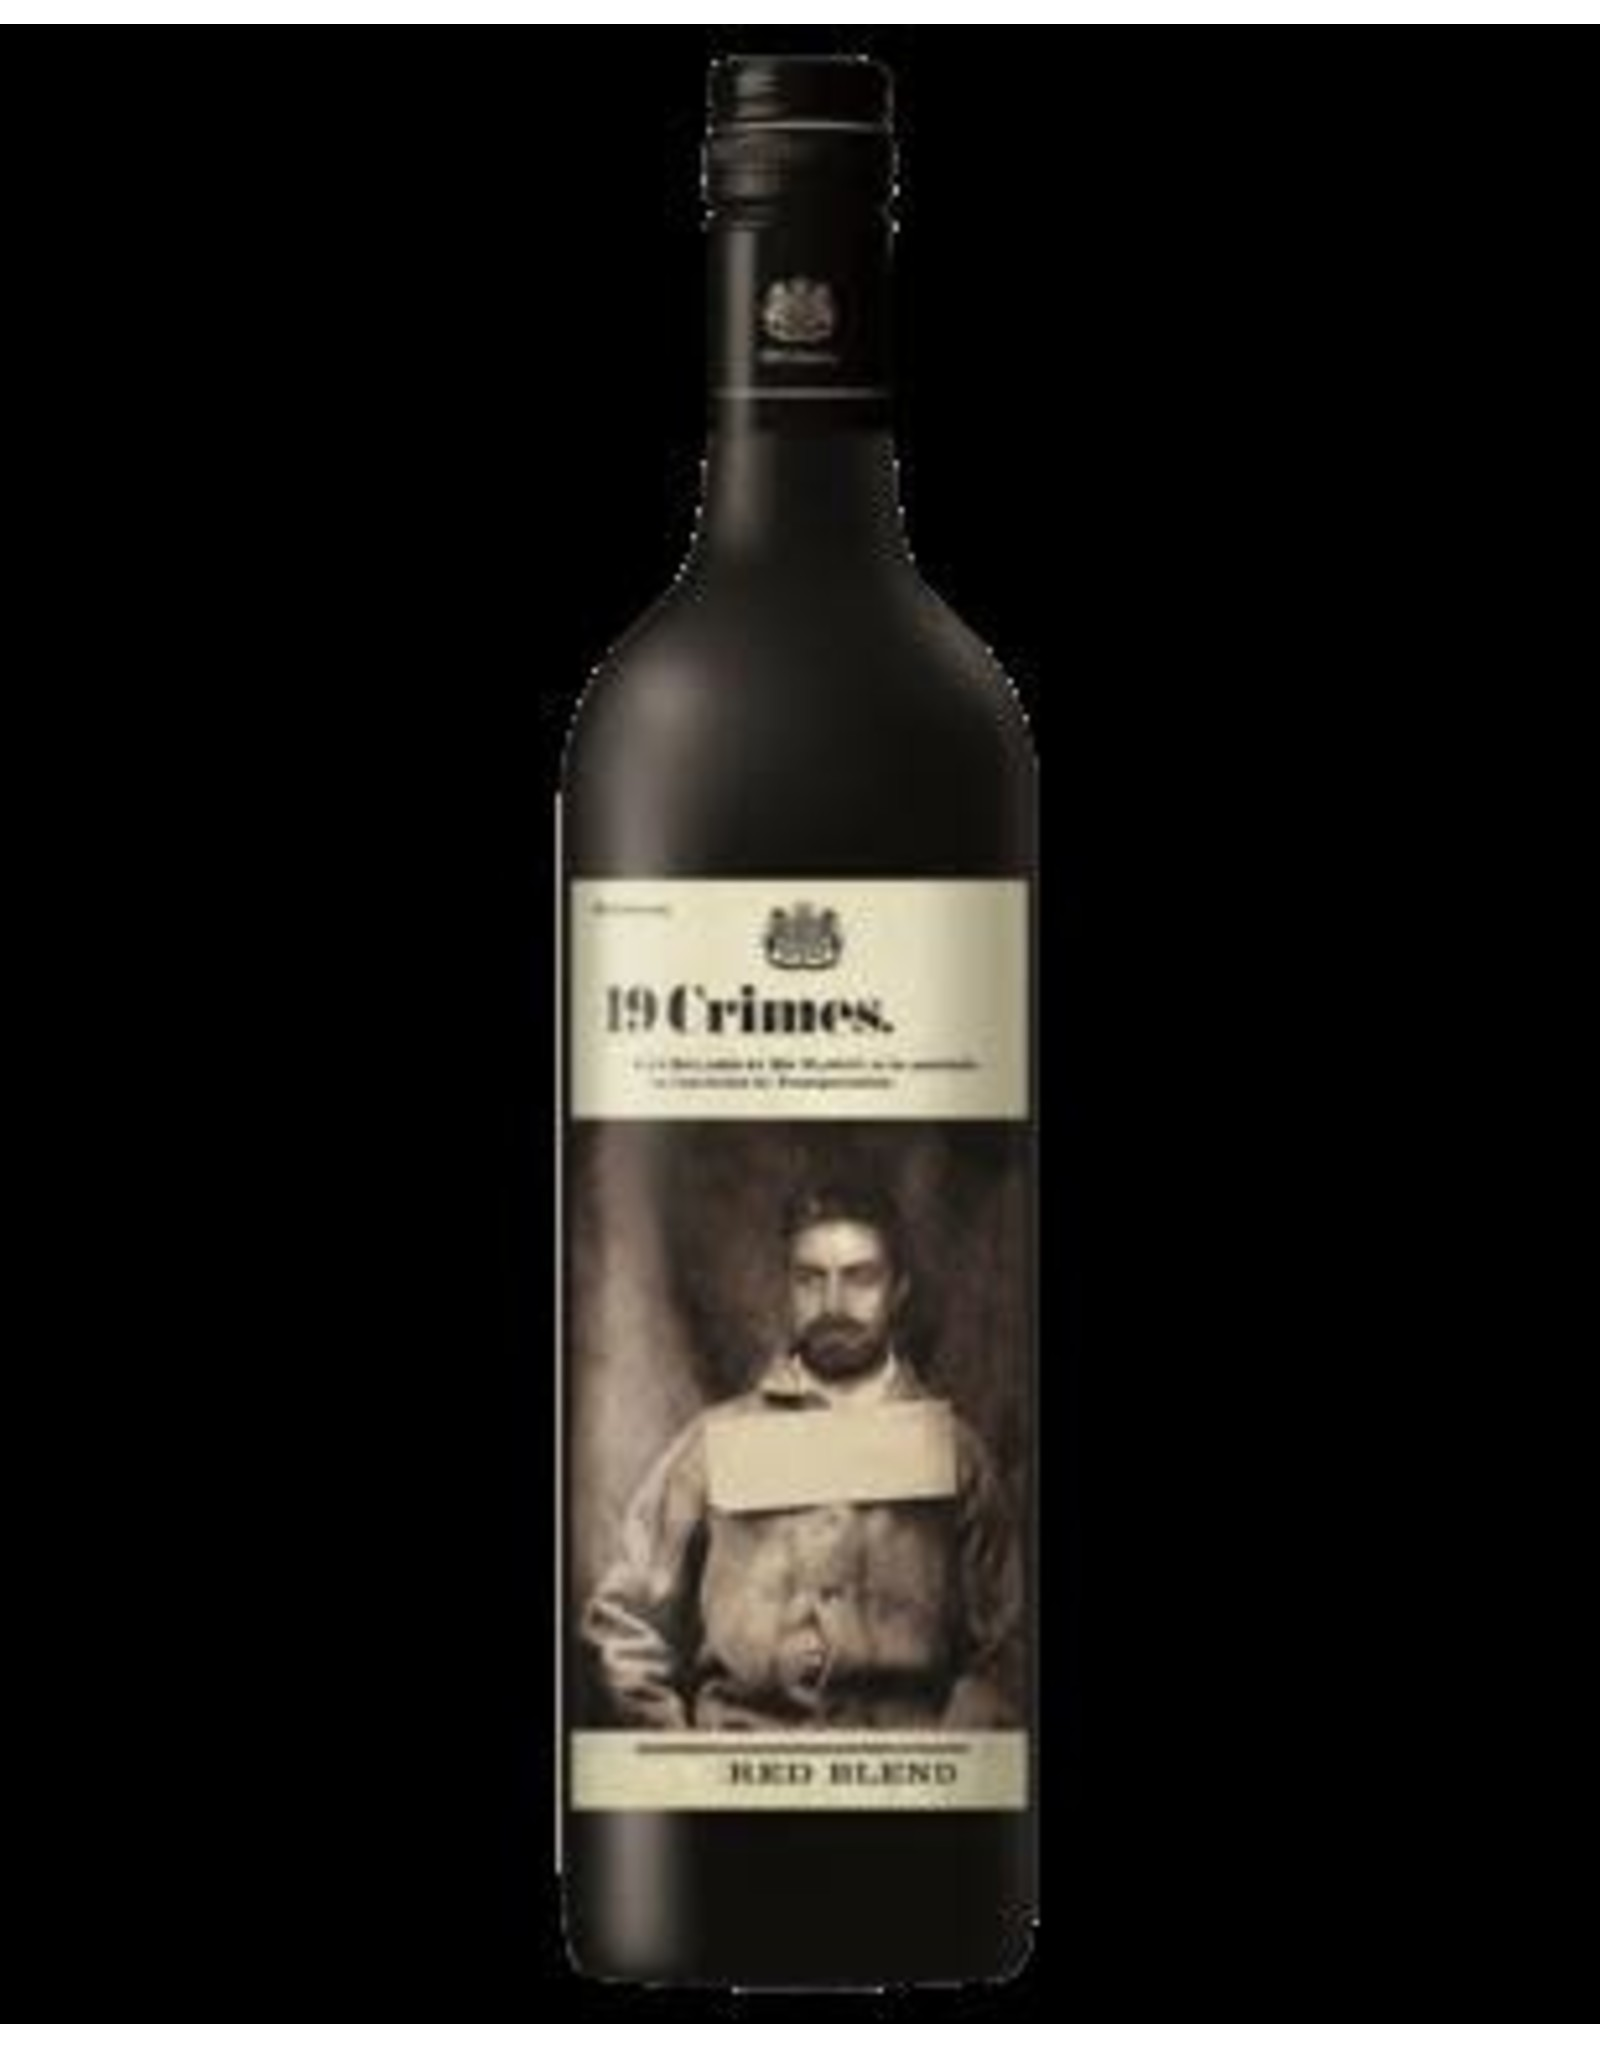 19 CRIMES RED BLEND 750ML 2013